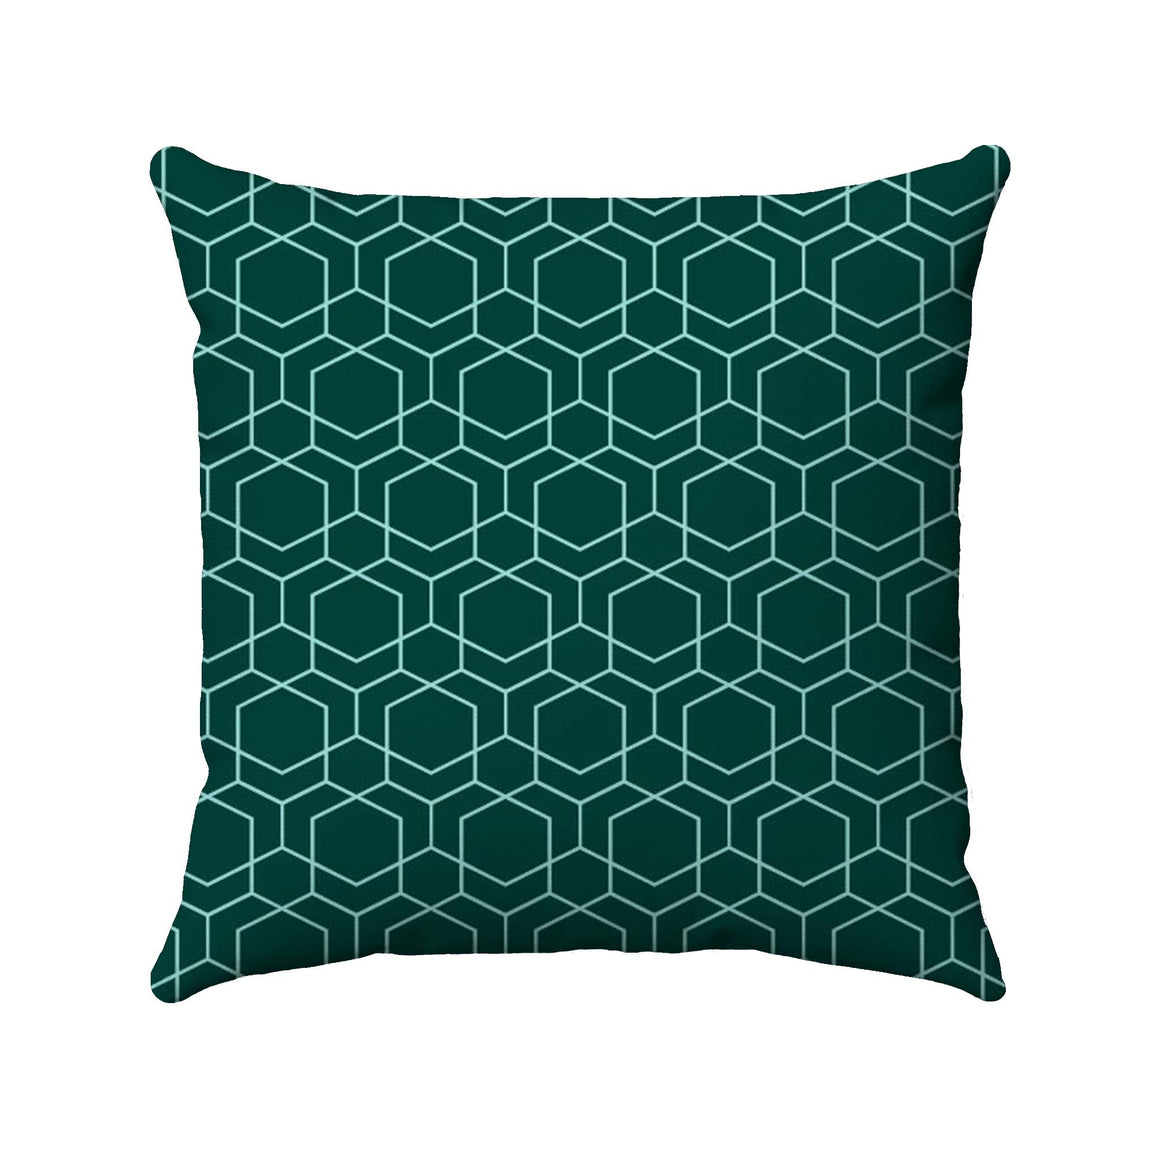 Sky blue line drawing of geometric cubes arranged in a honeycomb-like structure on a dark green background.